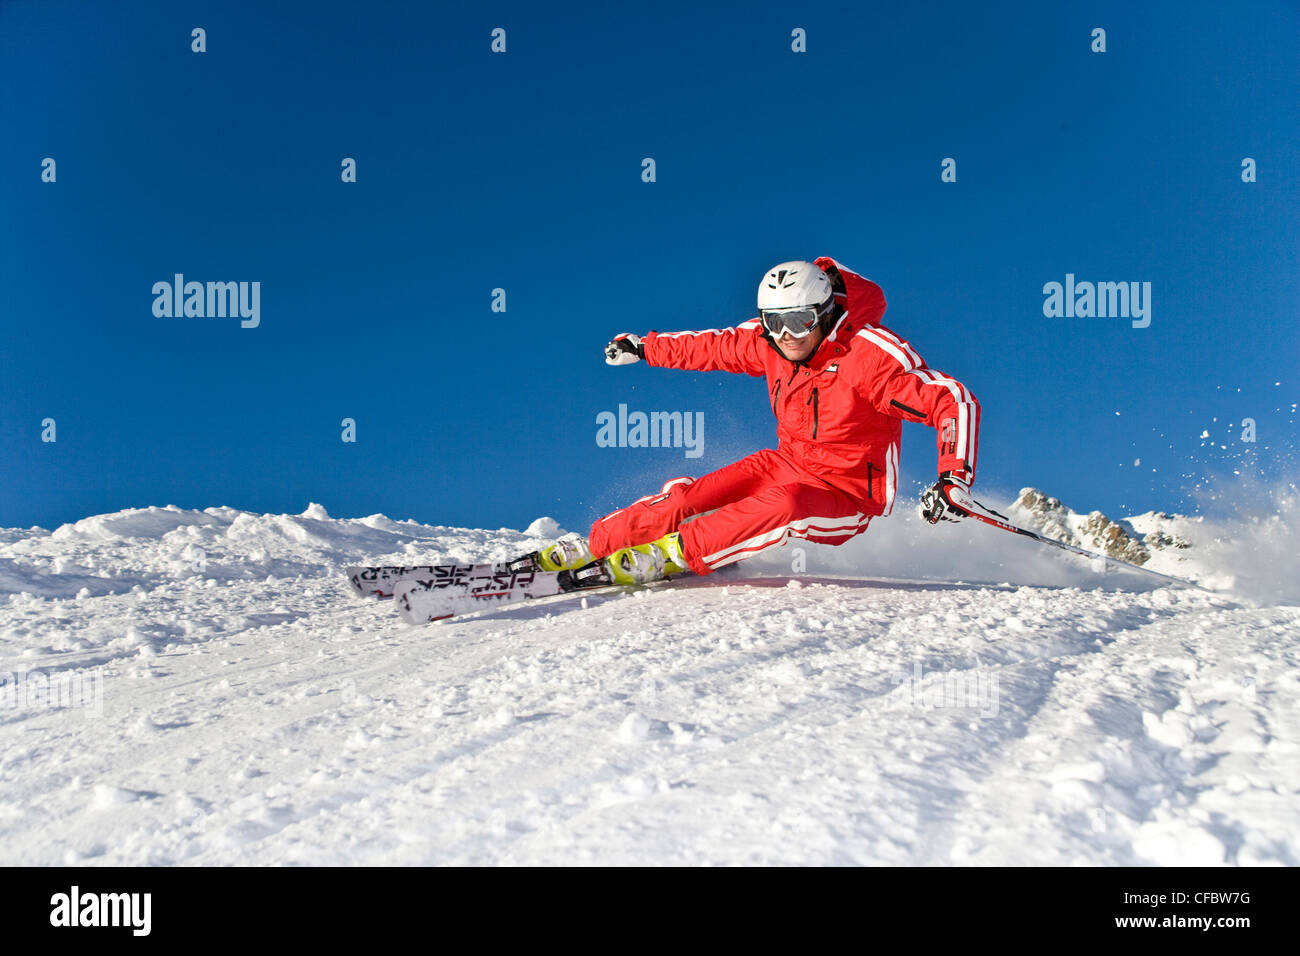 Carving skiing extreme man ski winter sports fun